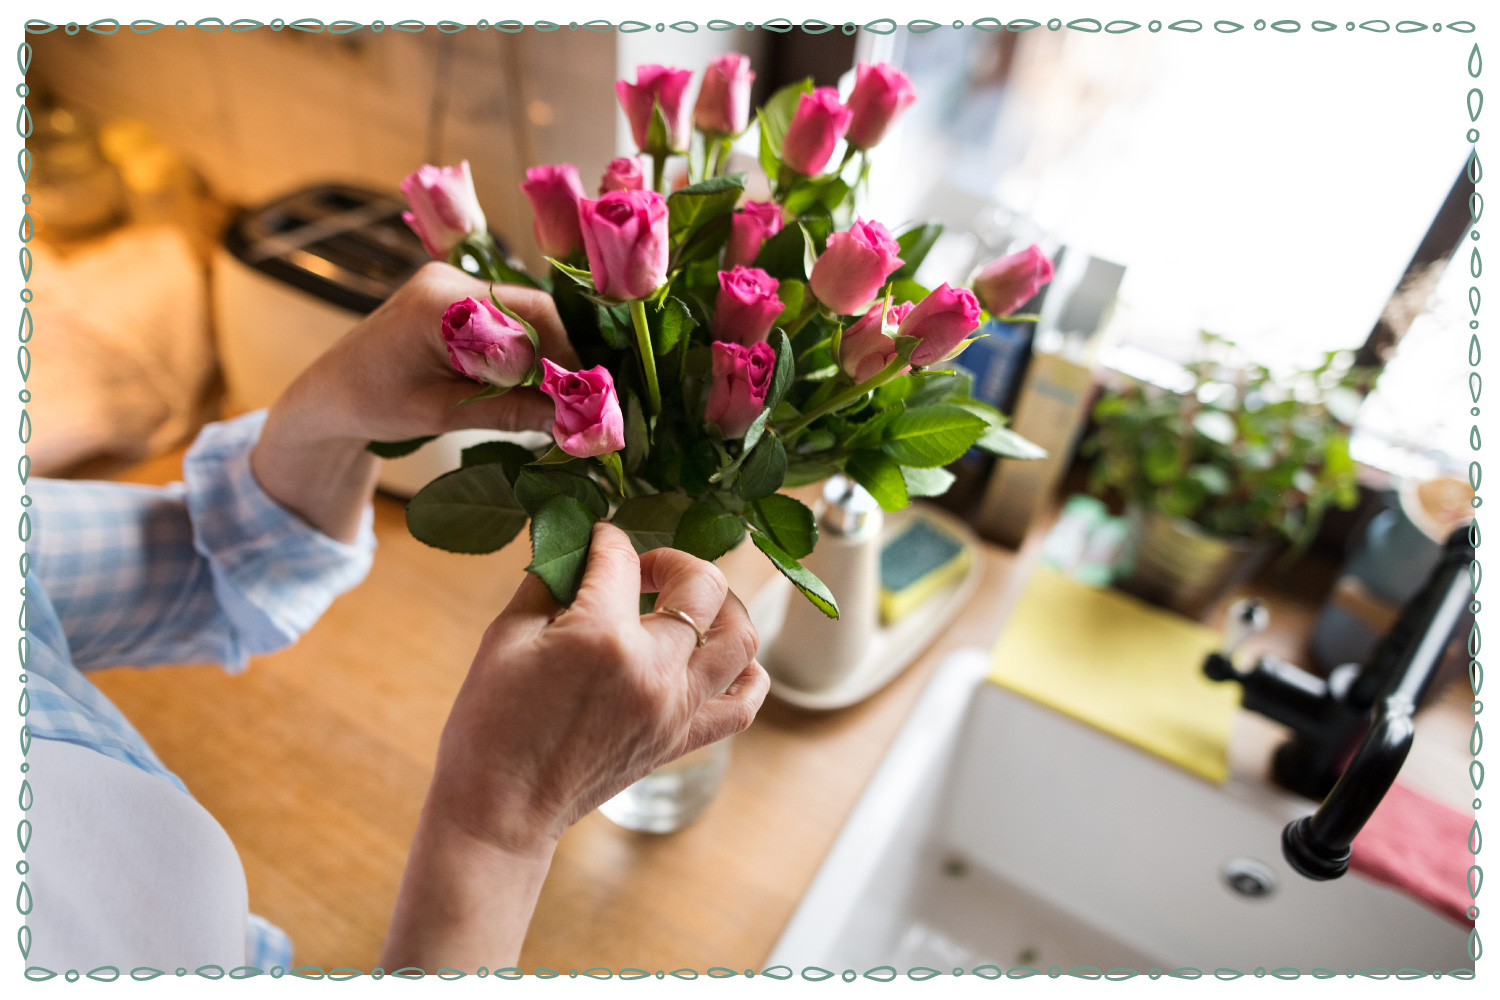 hands arranging roses in a vase on a kitchen counter